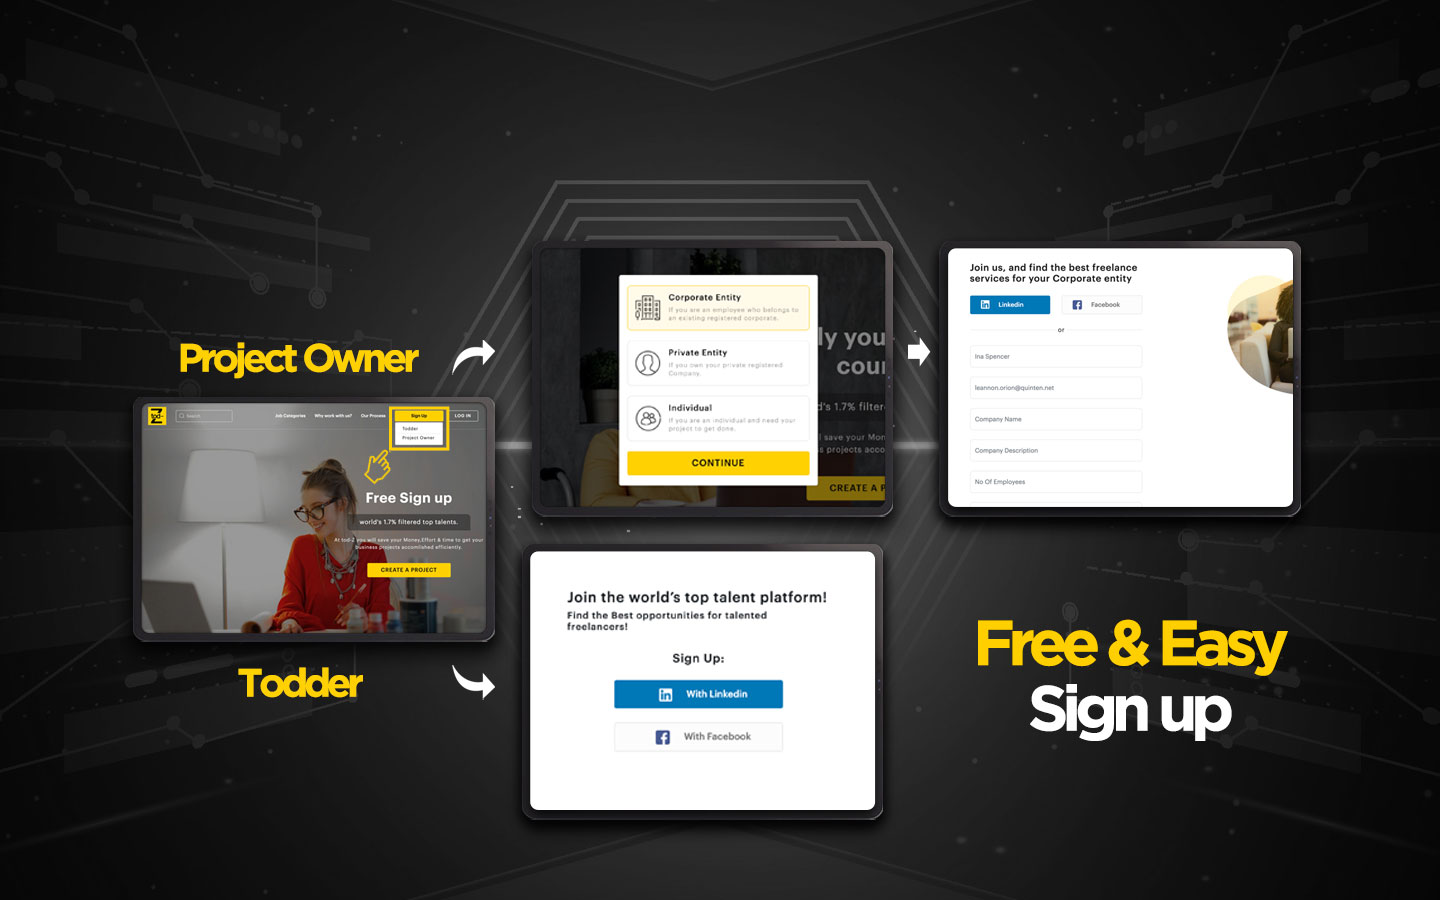 Project Owner and Freelancer steps